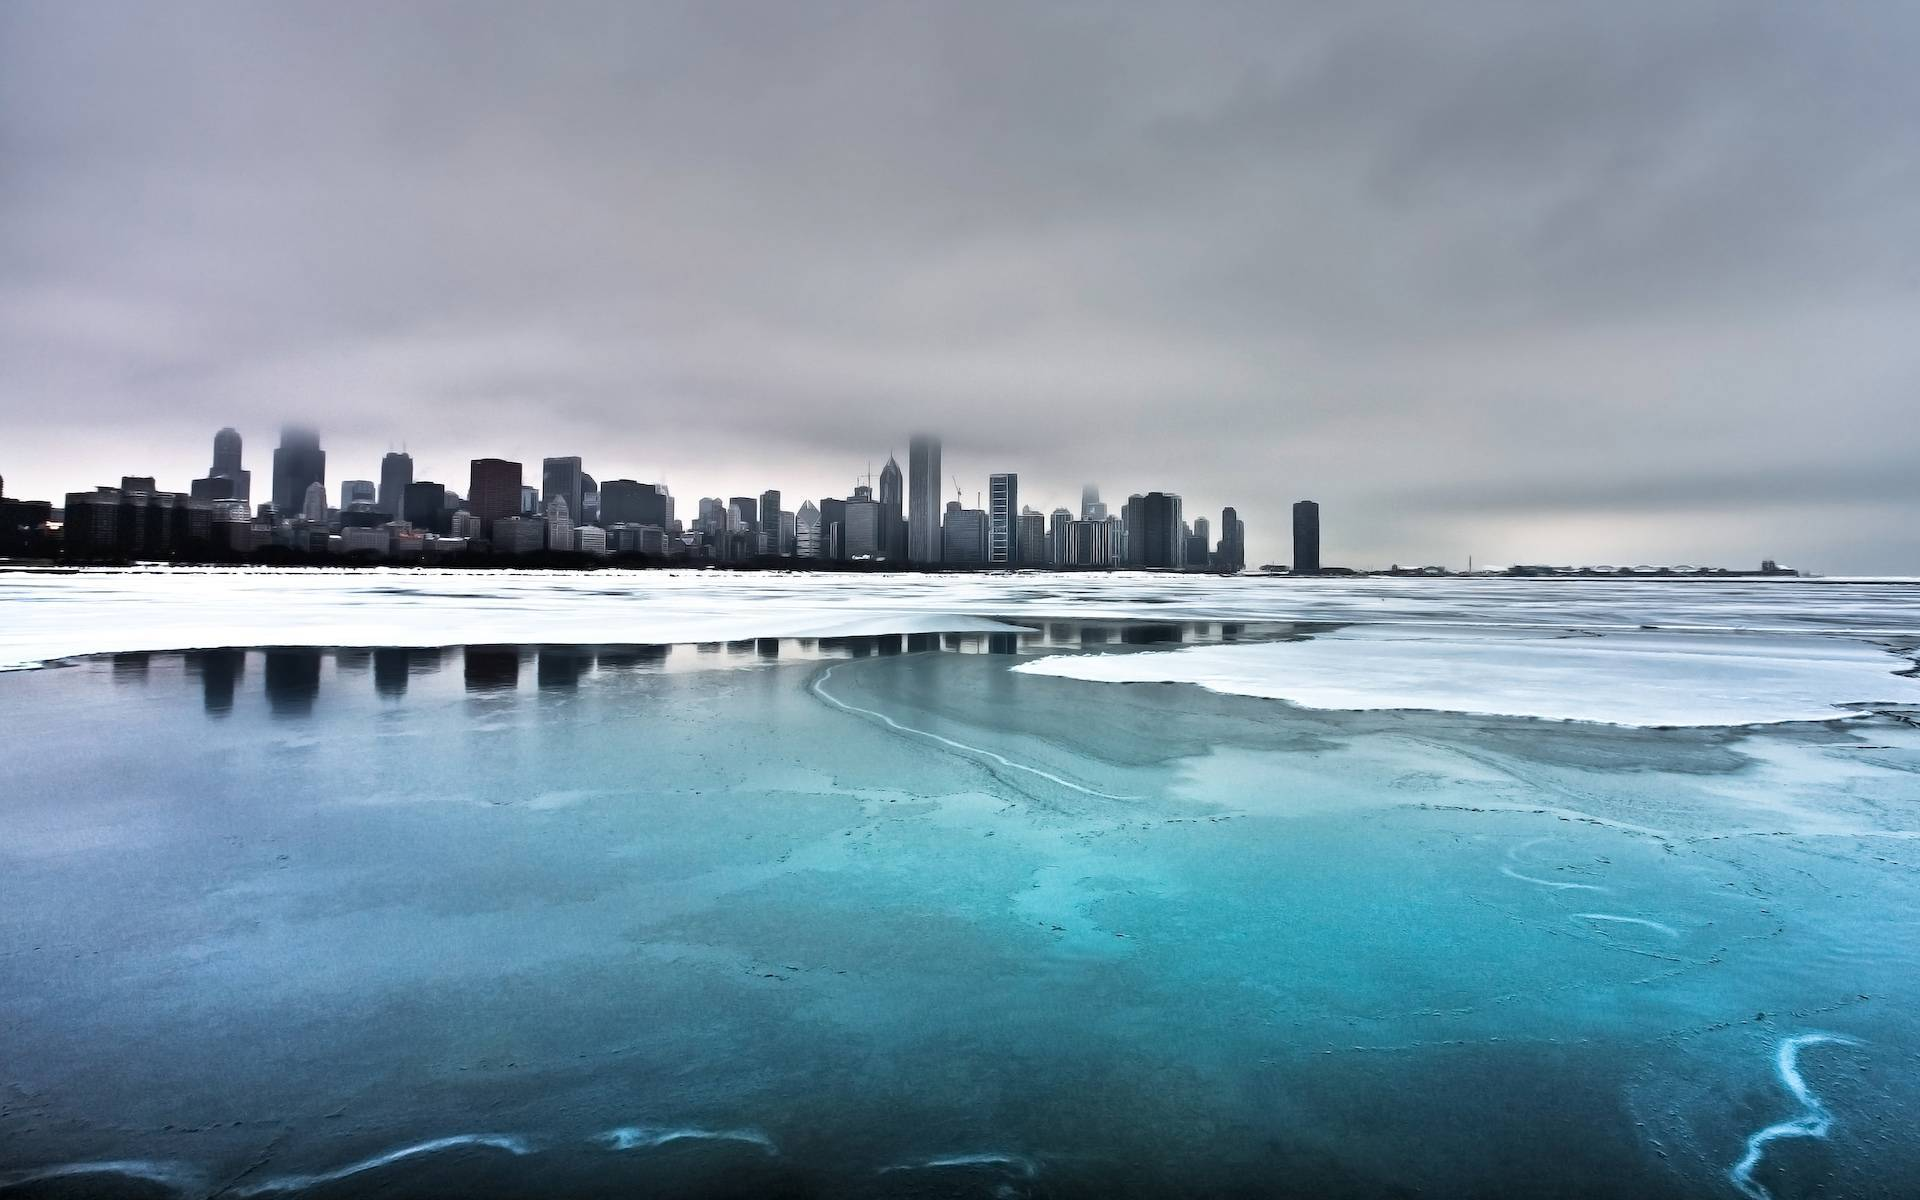 Image: City, river, winter, snow, ice, water, sky, clouds